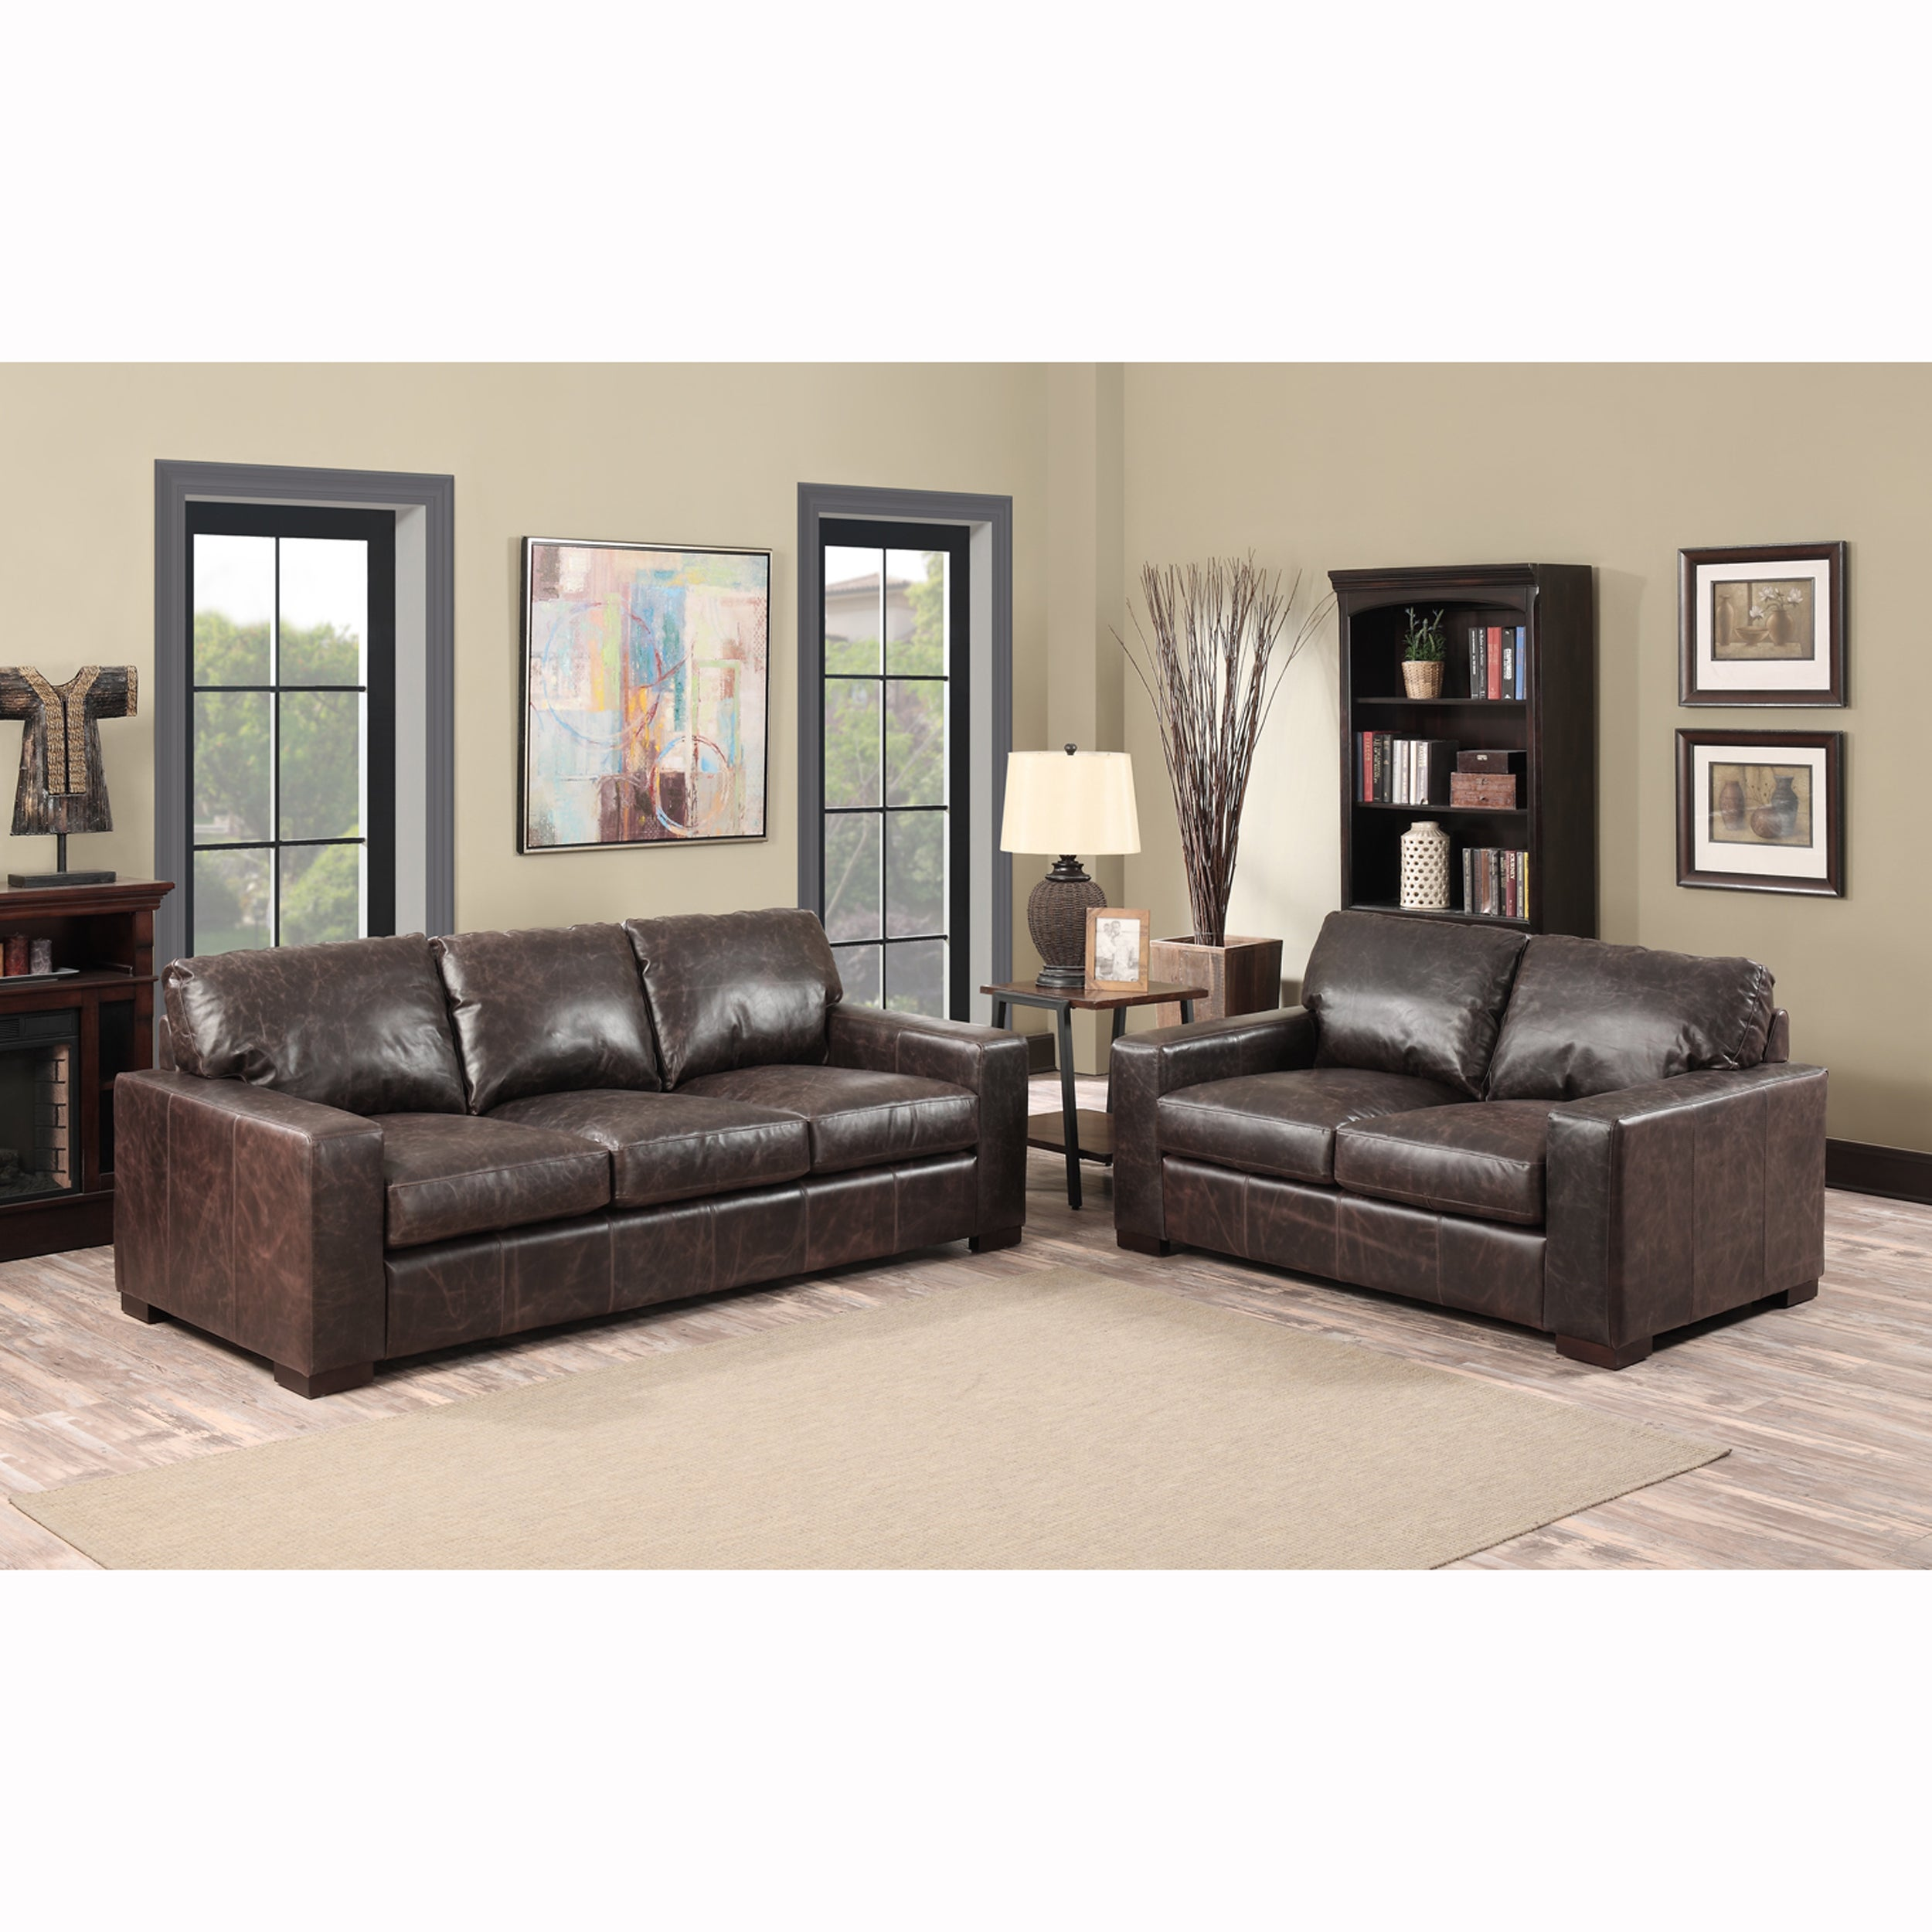 Maxweld Premium Distressed Brown Top Grain Leather Sofa And Loveseat Free Shipping Today 11546661